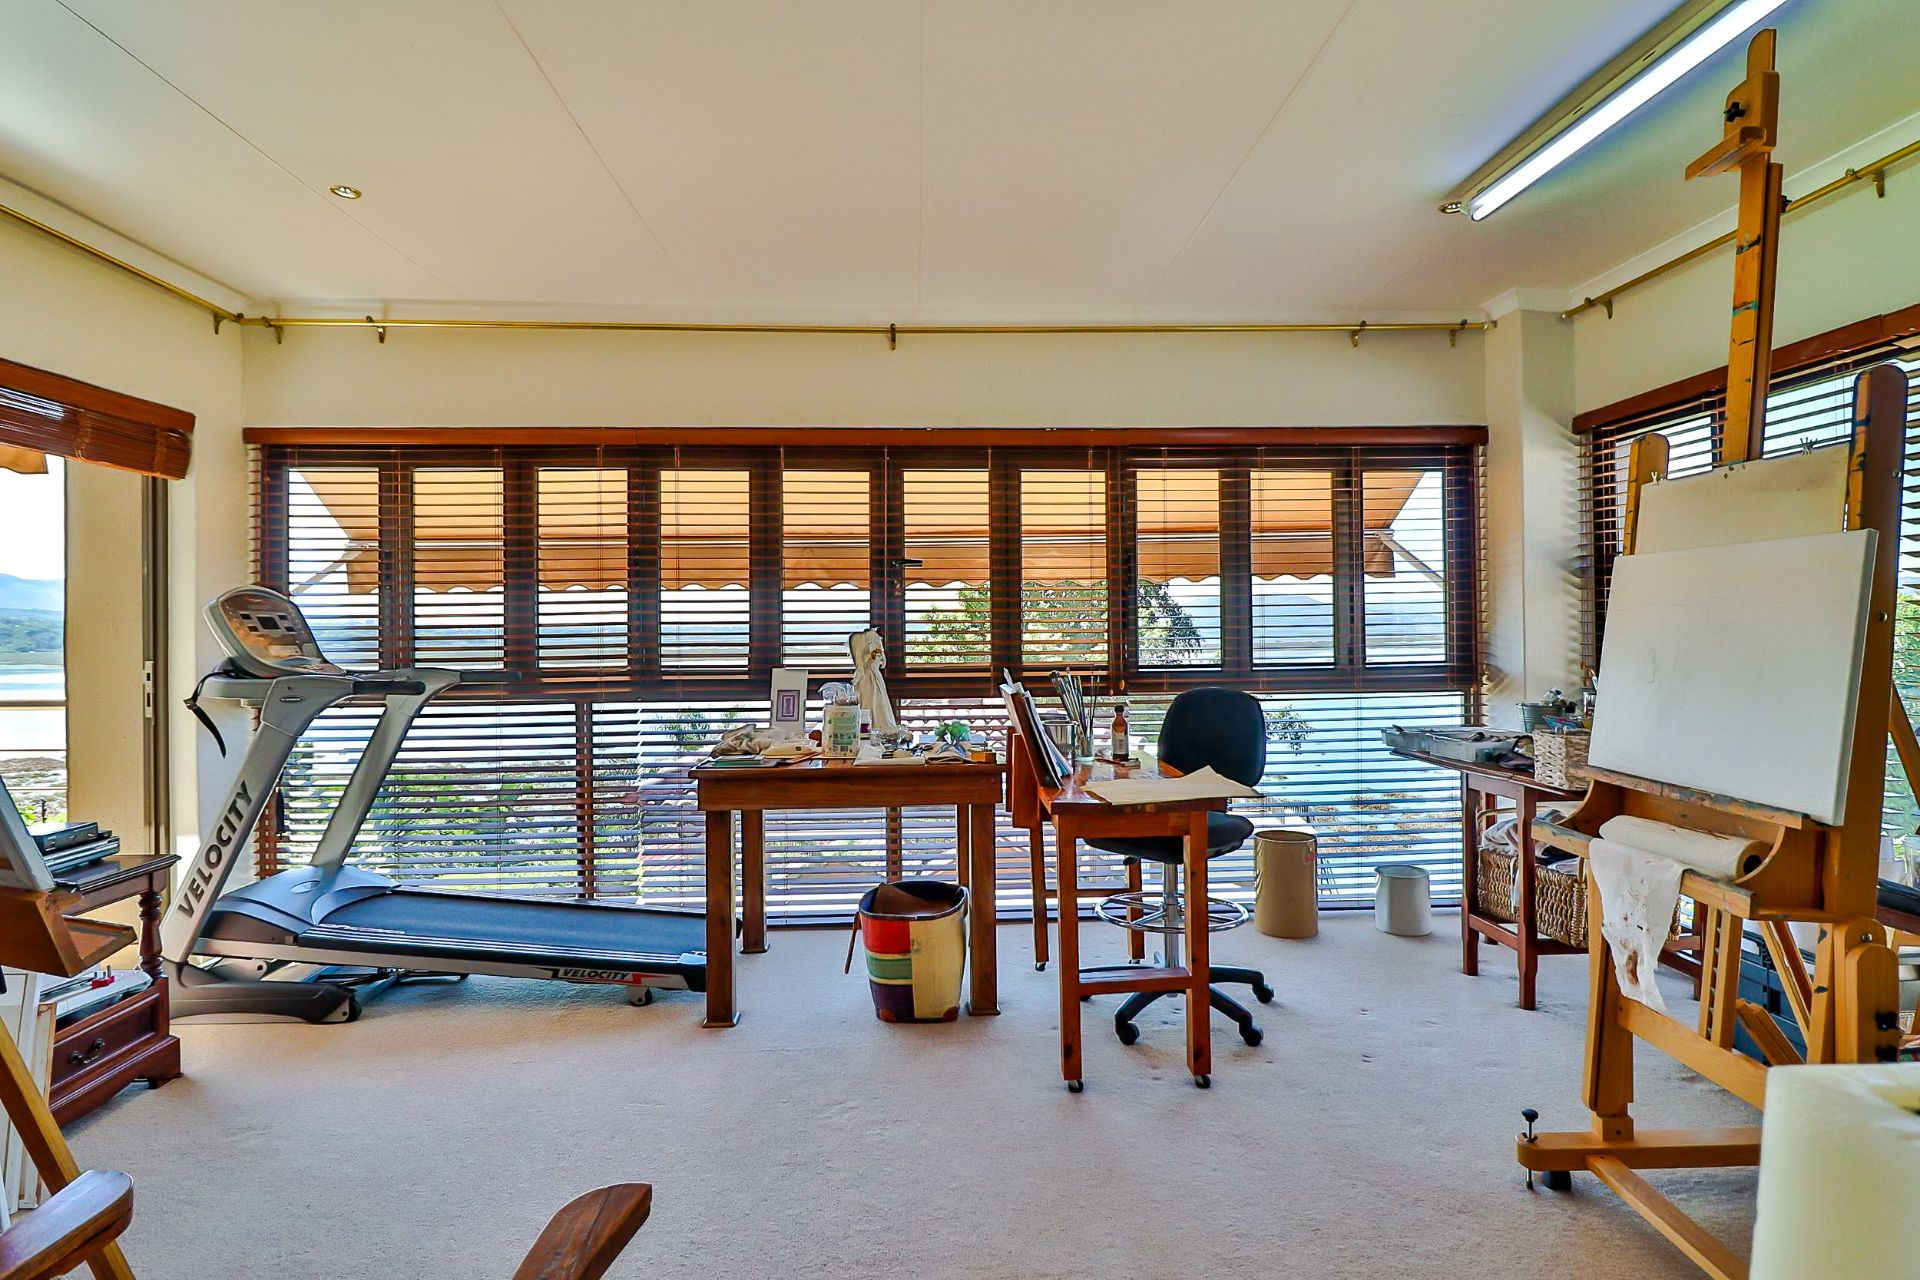 House in Kosmos Village - Enclosed patio which is the perfect art studio!